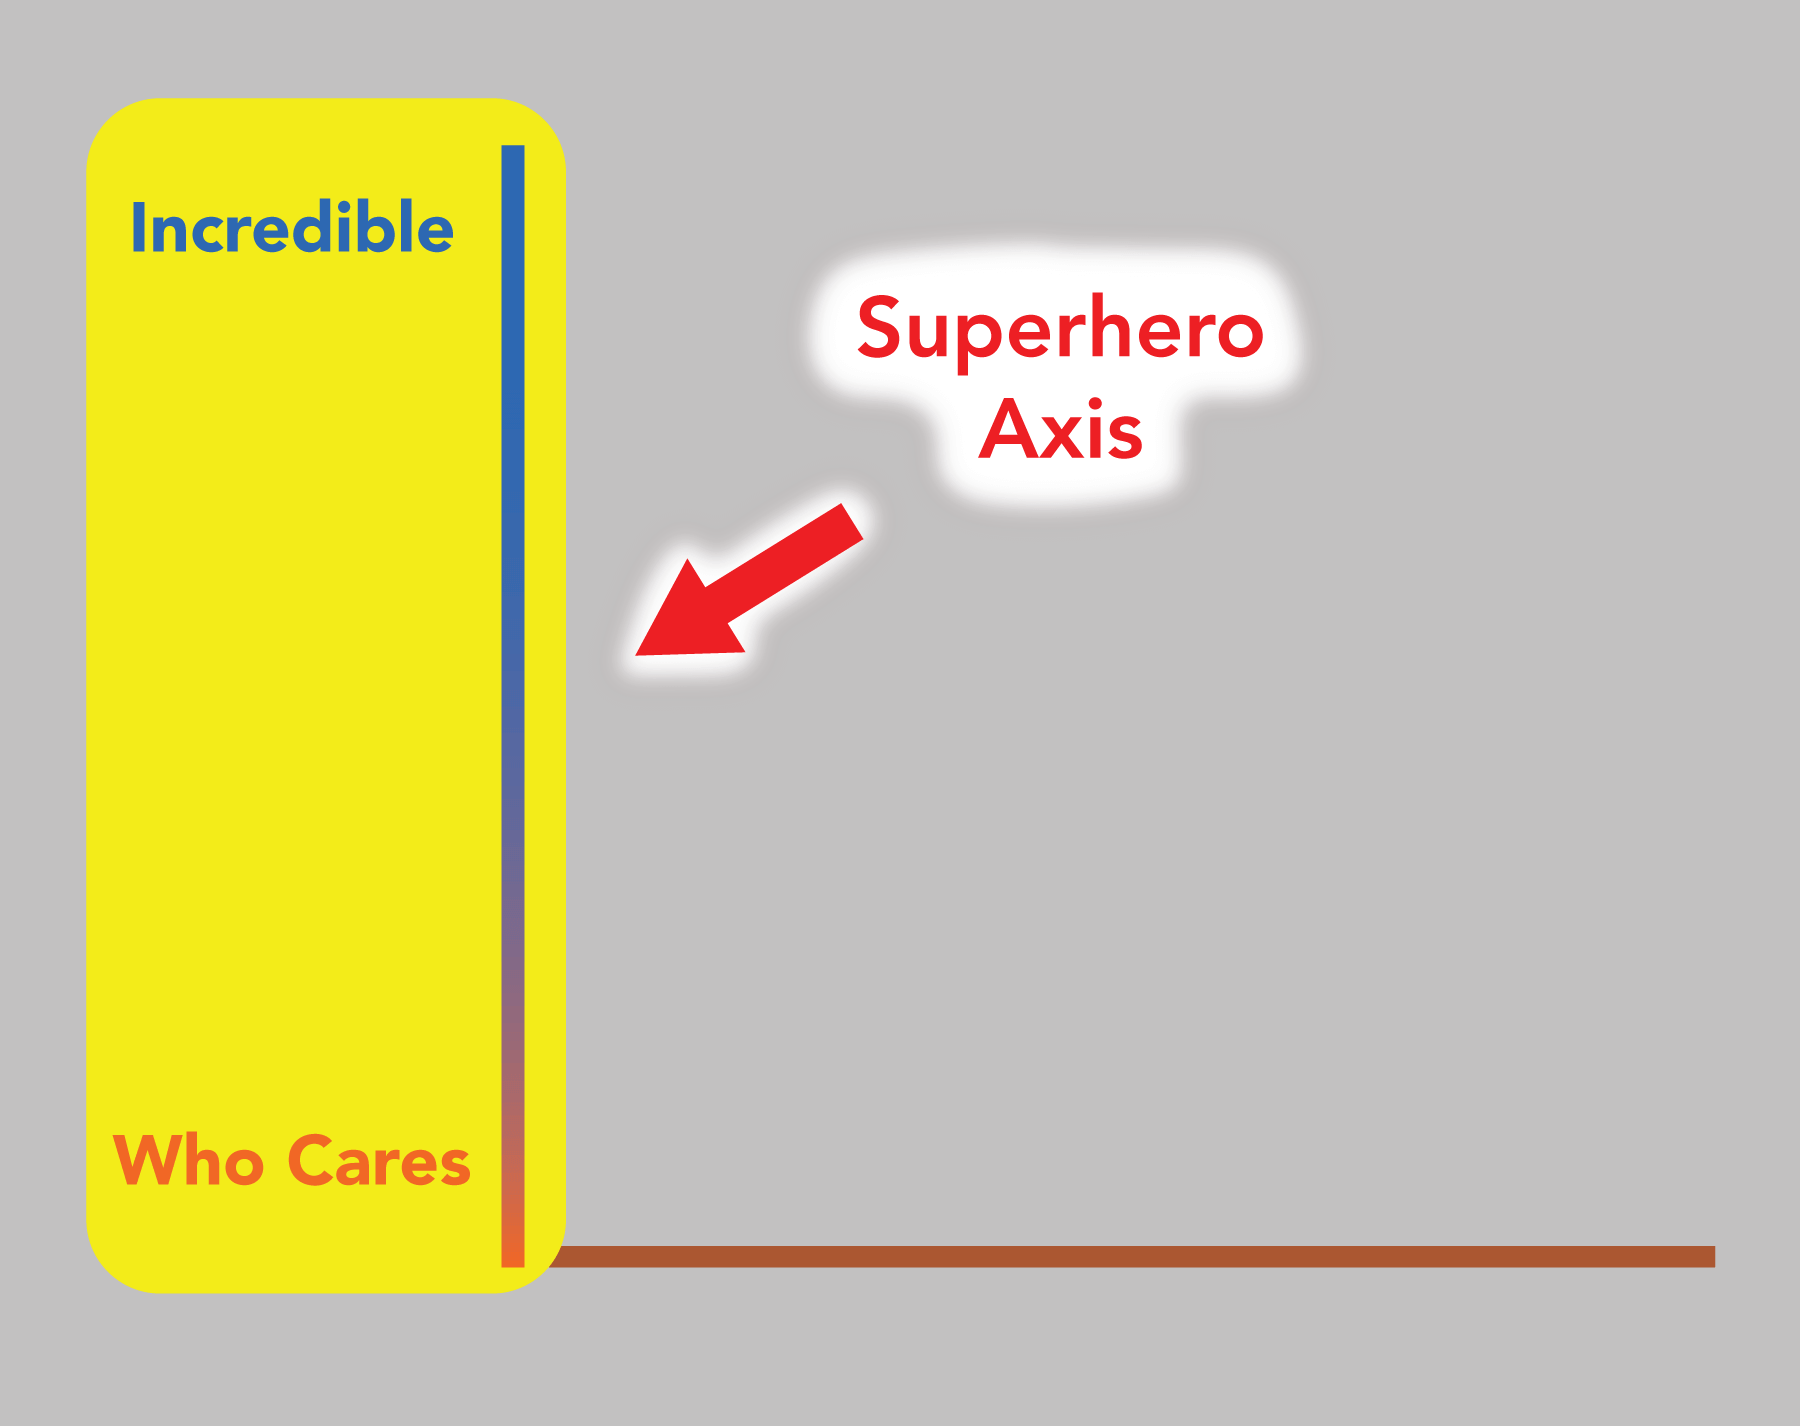 superhero axis